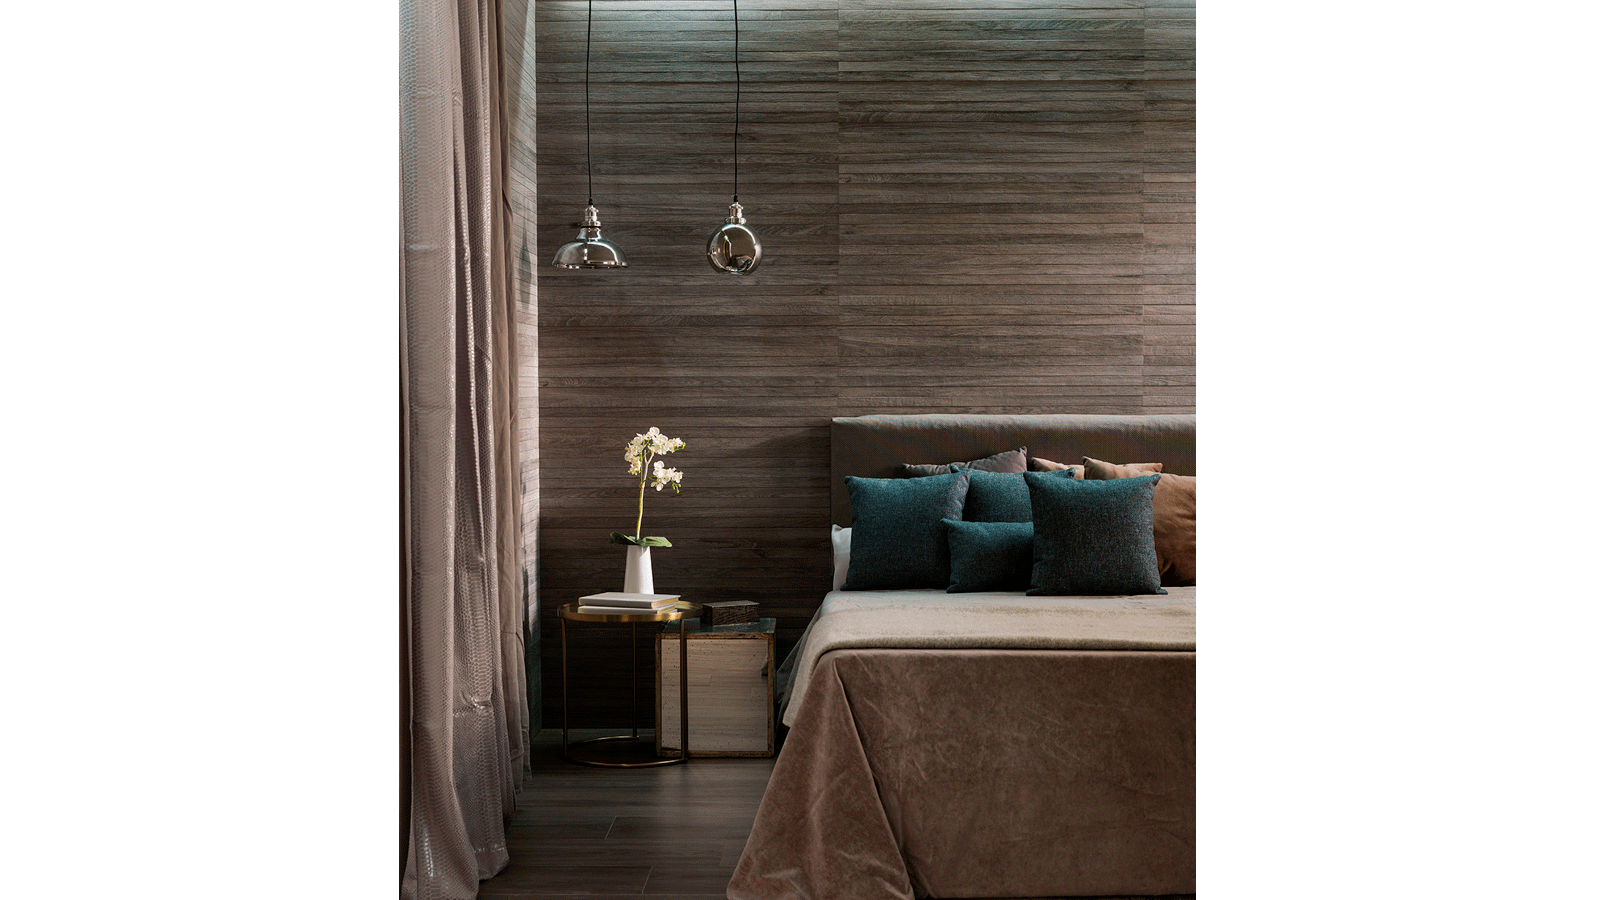 Porcelanosa Loweer Tanzania Walnut Tile 33 3 x 100 cm | MP